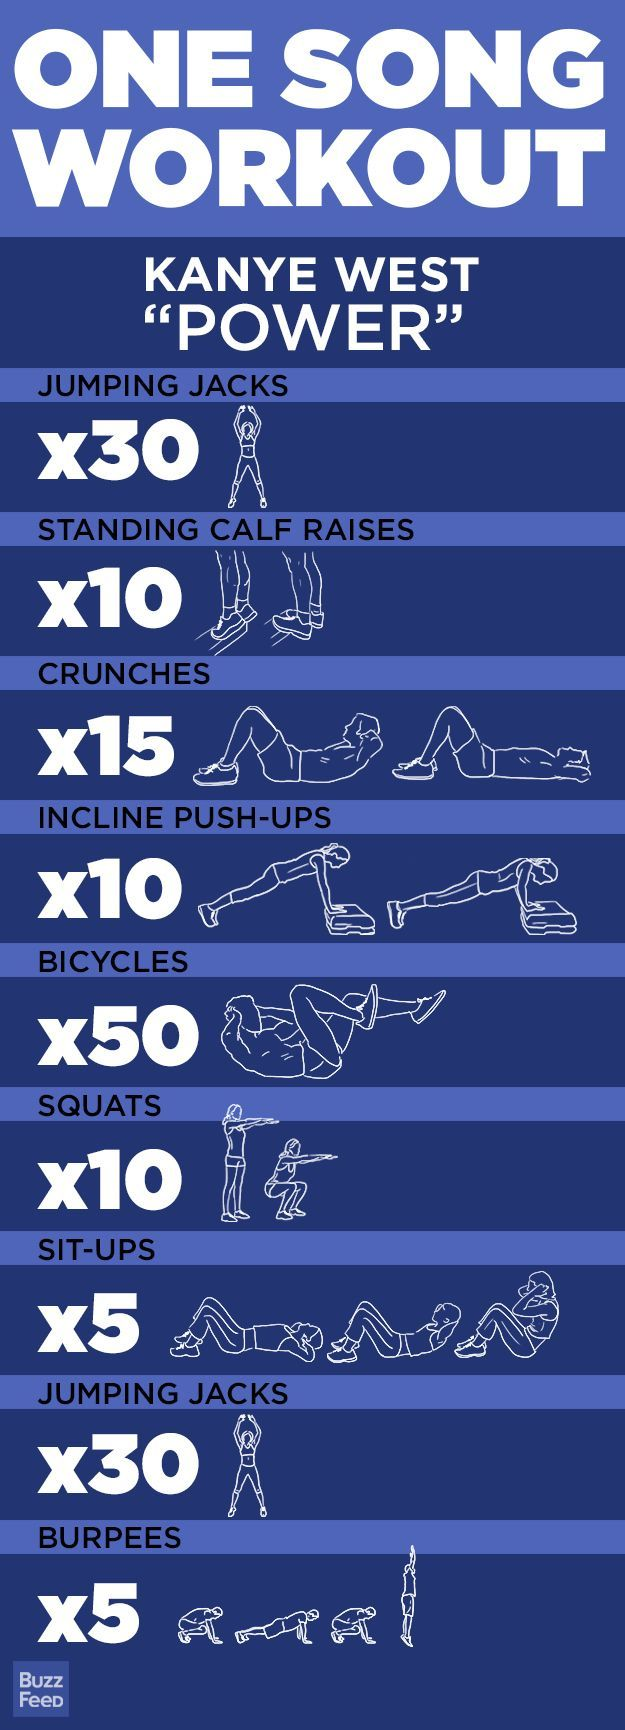 5 One-Song Workouts: this may be easy enough?